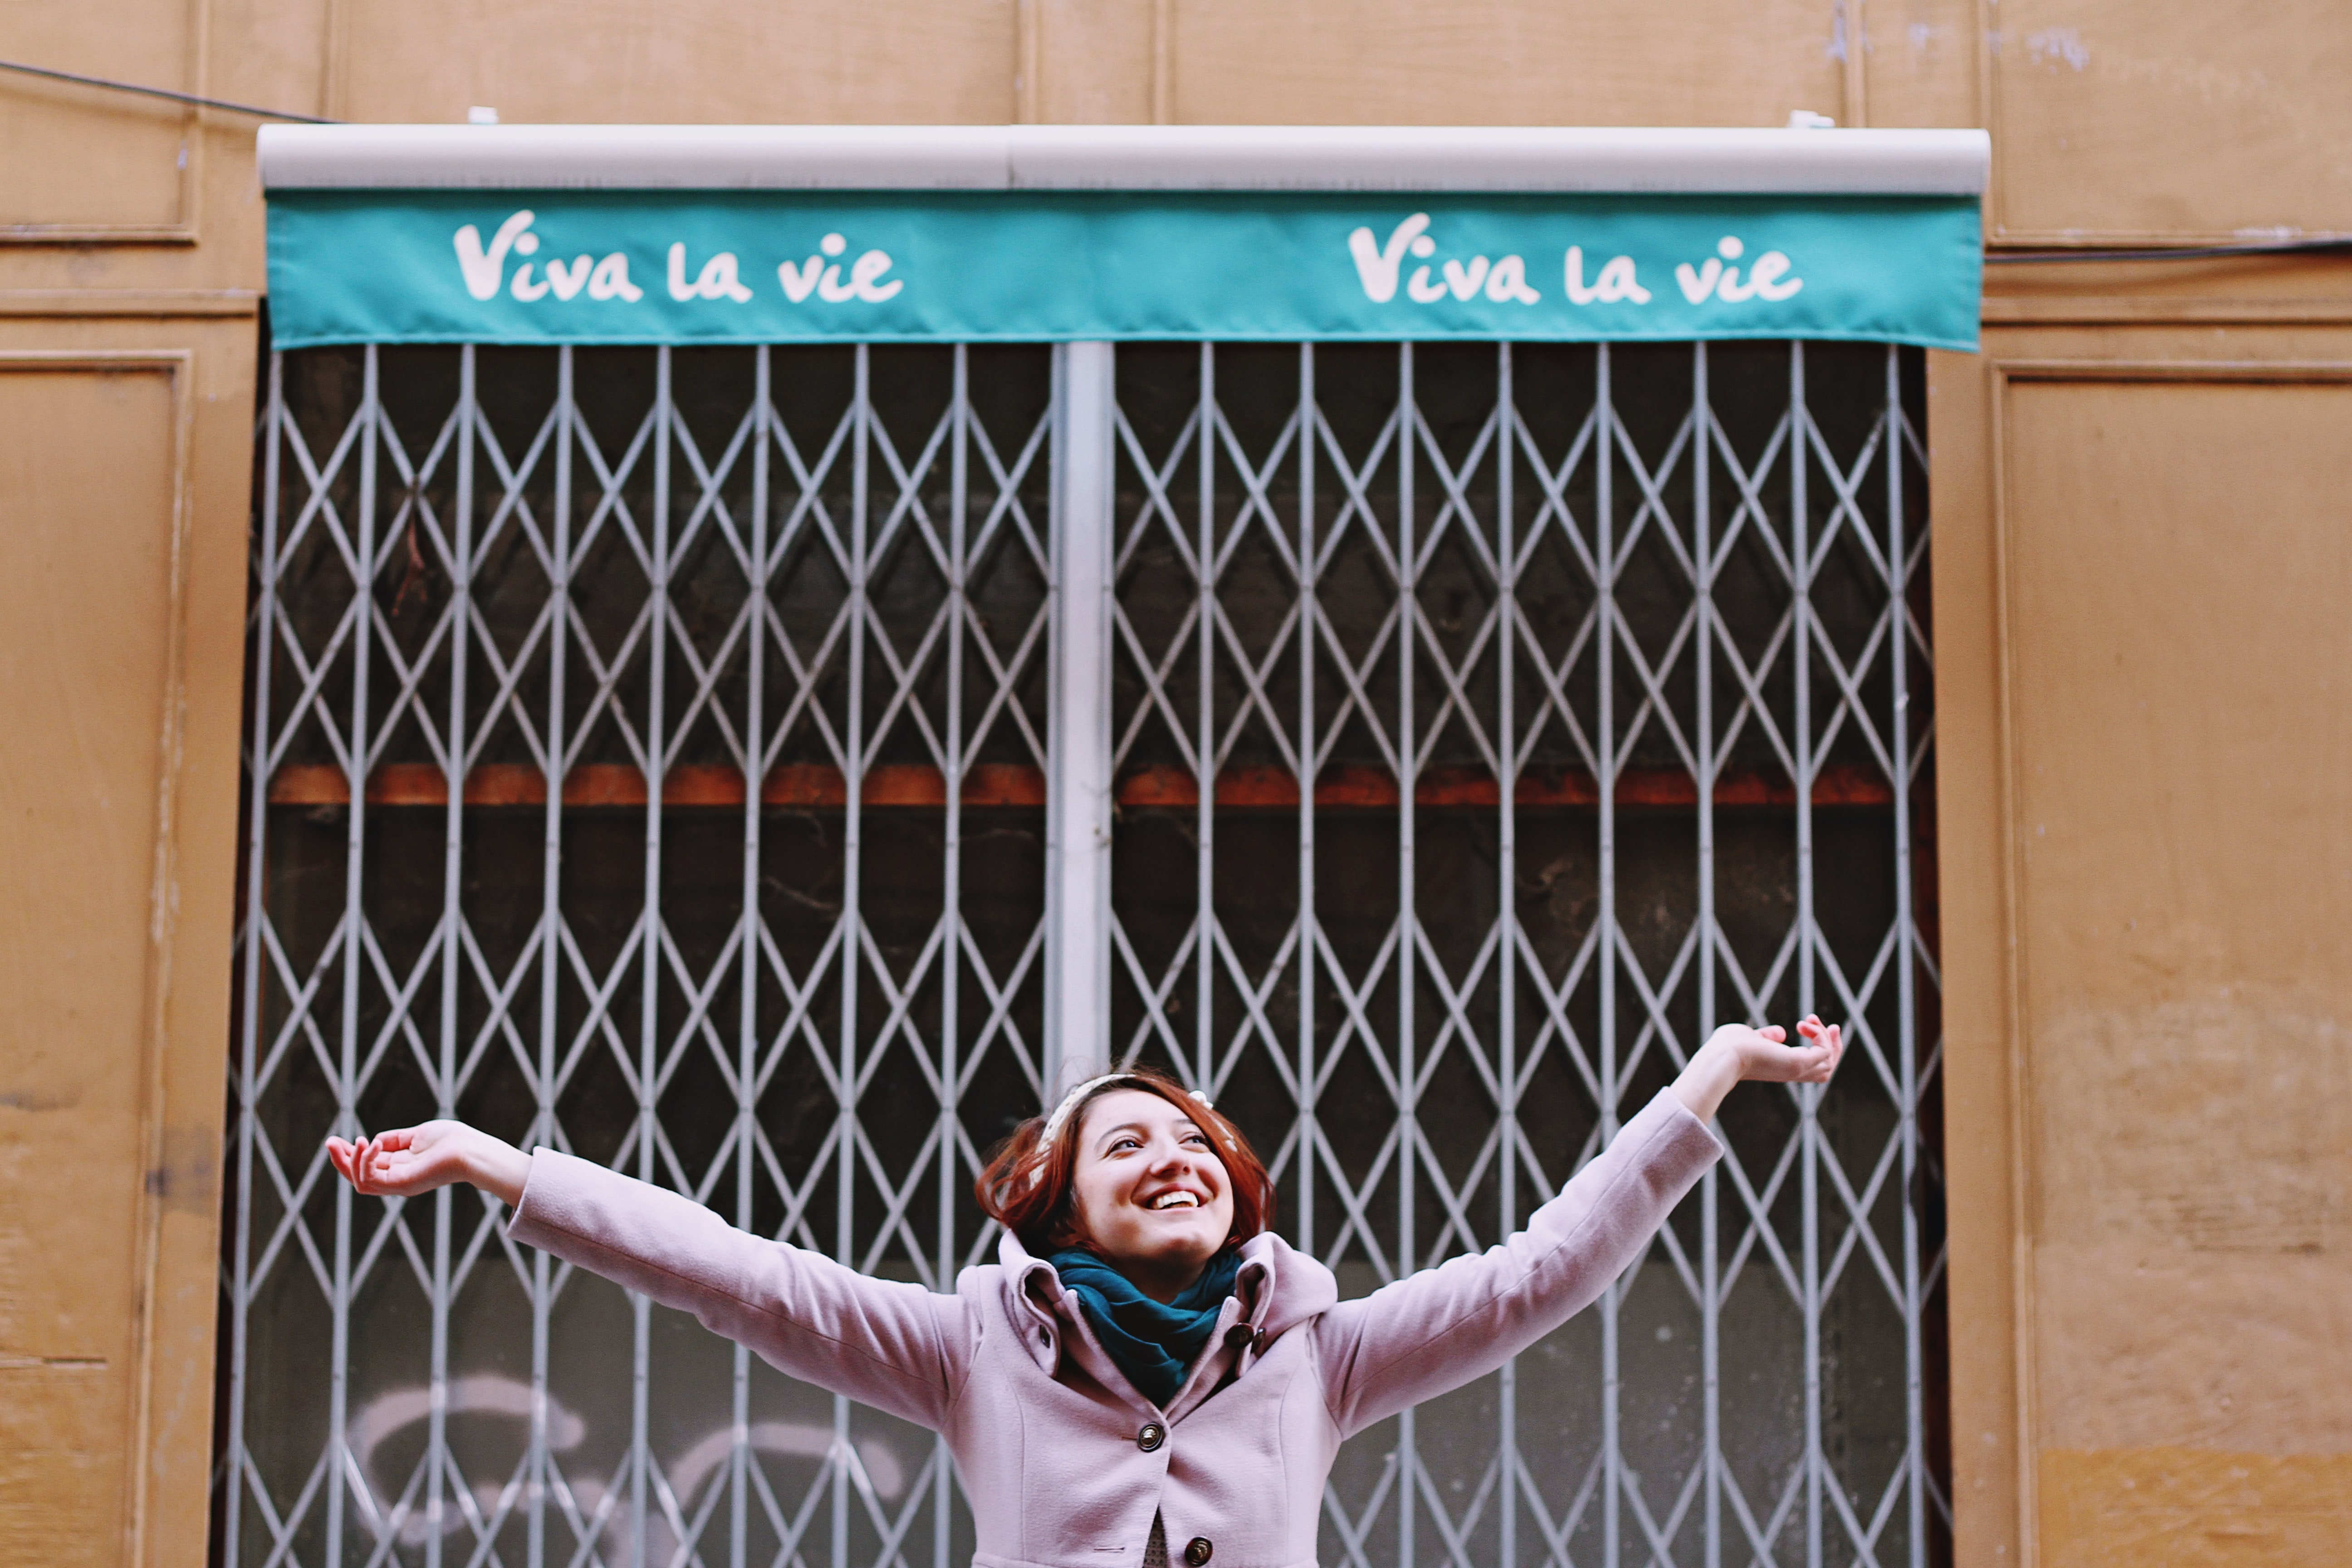 A woman smiling with outstretched arms in front of a closed storefront in Toulouse